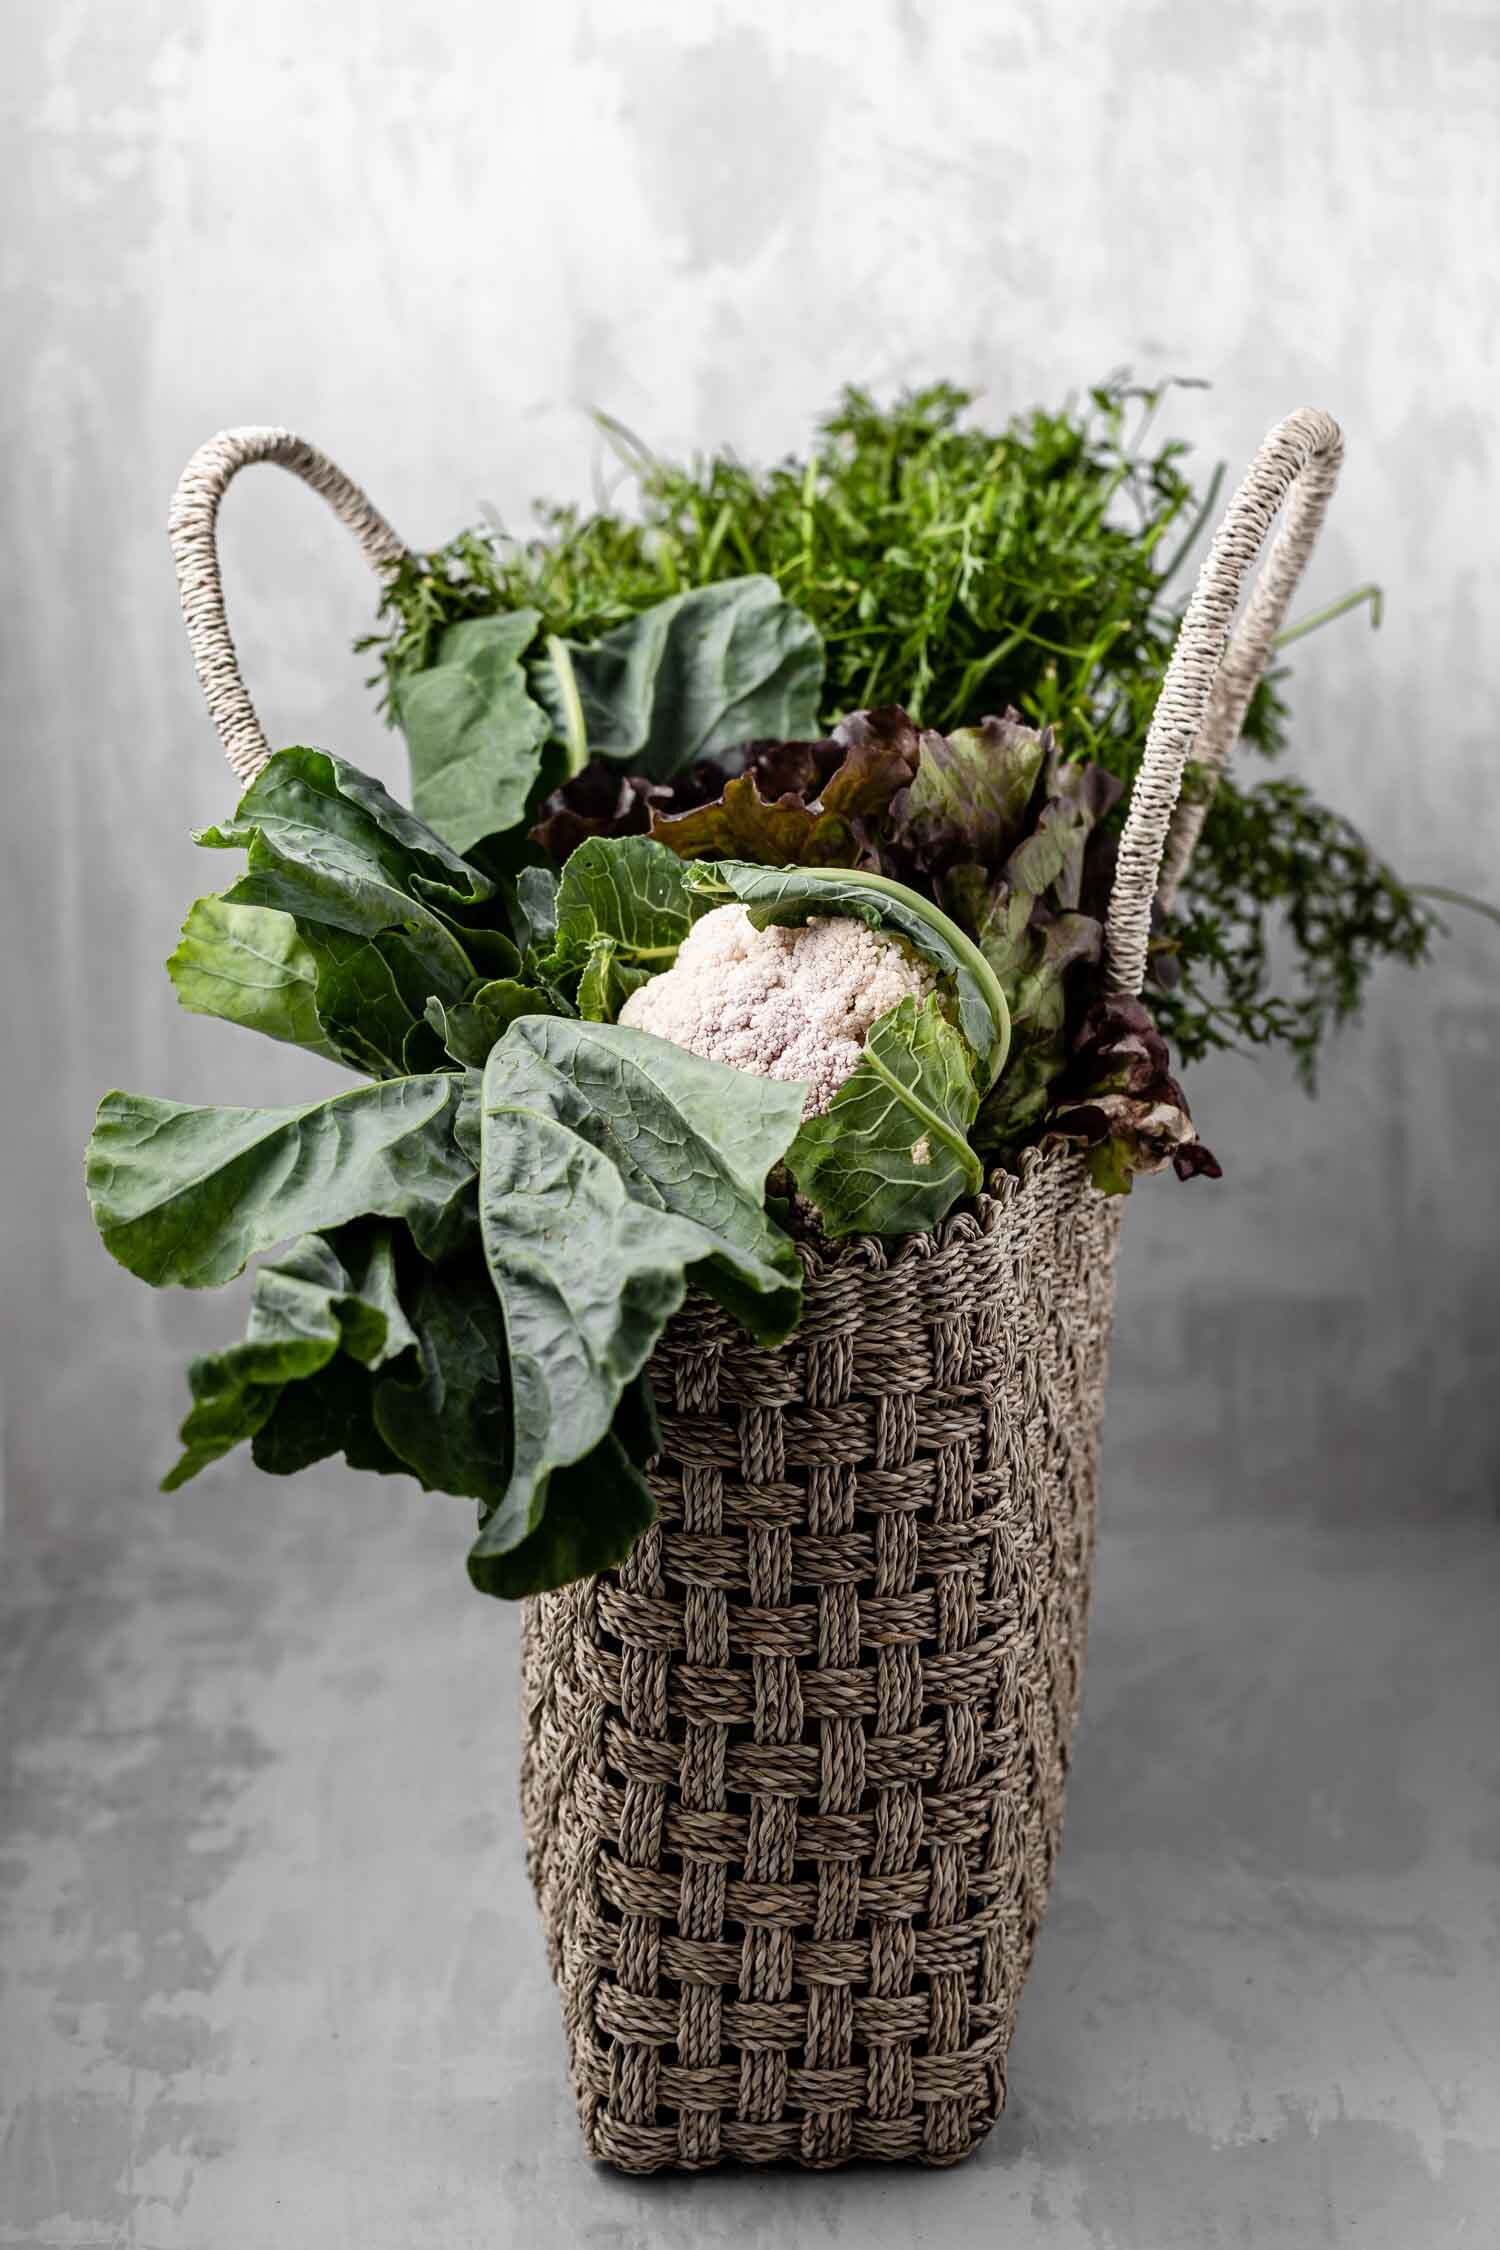 greens-basket.jpg